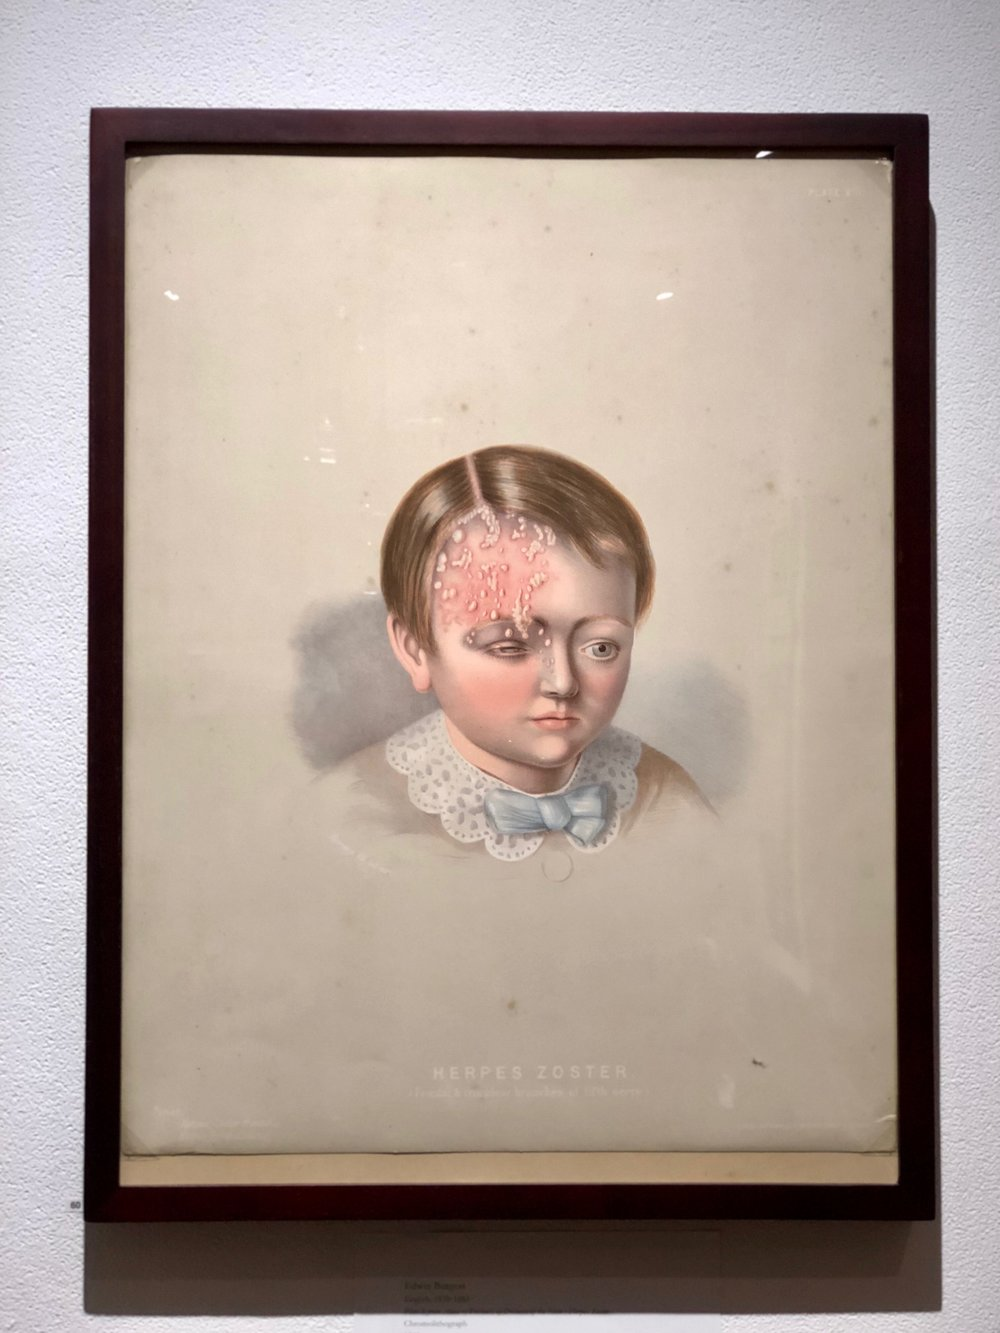 surgicalmuseumherpes.JPG